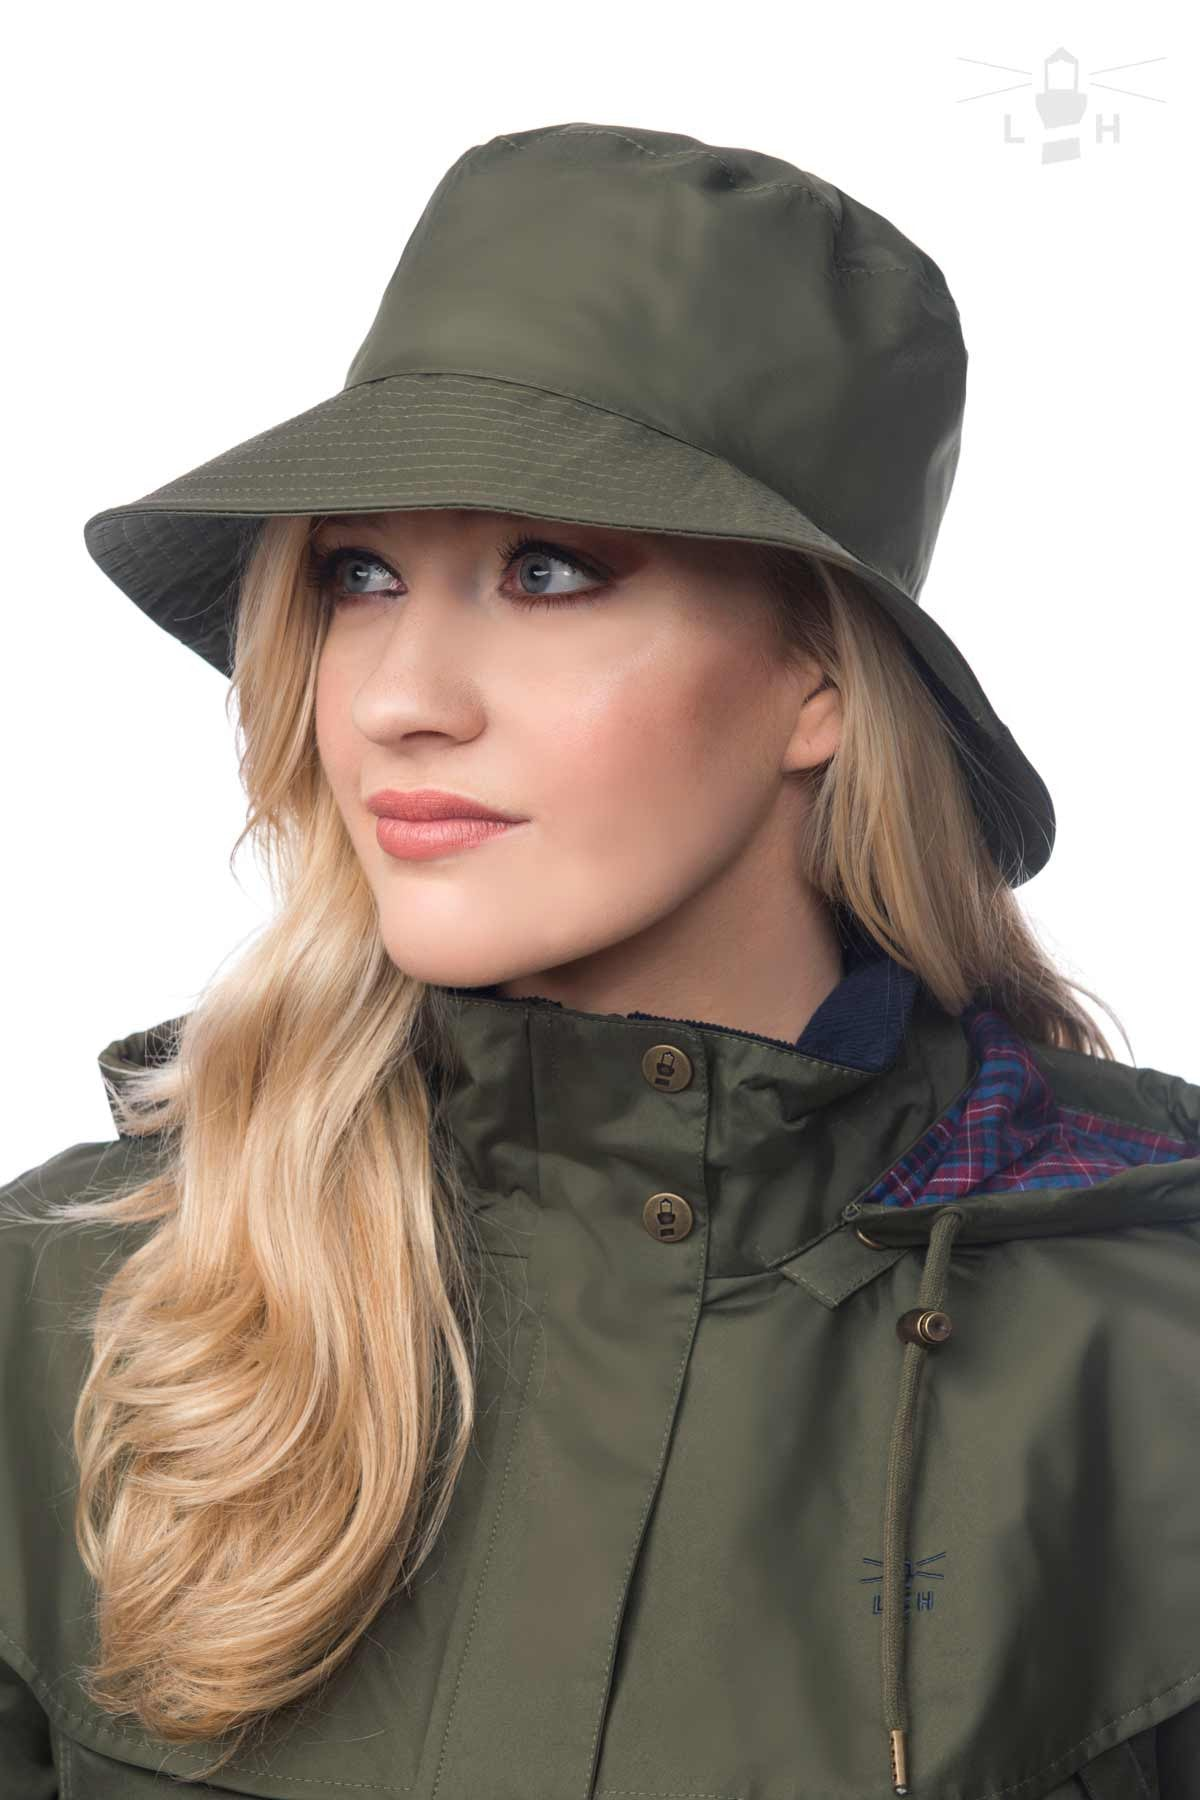 Storm Waterproof Rainhat Womens Rainhats Target Dry